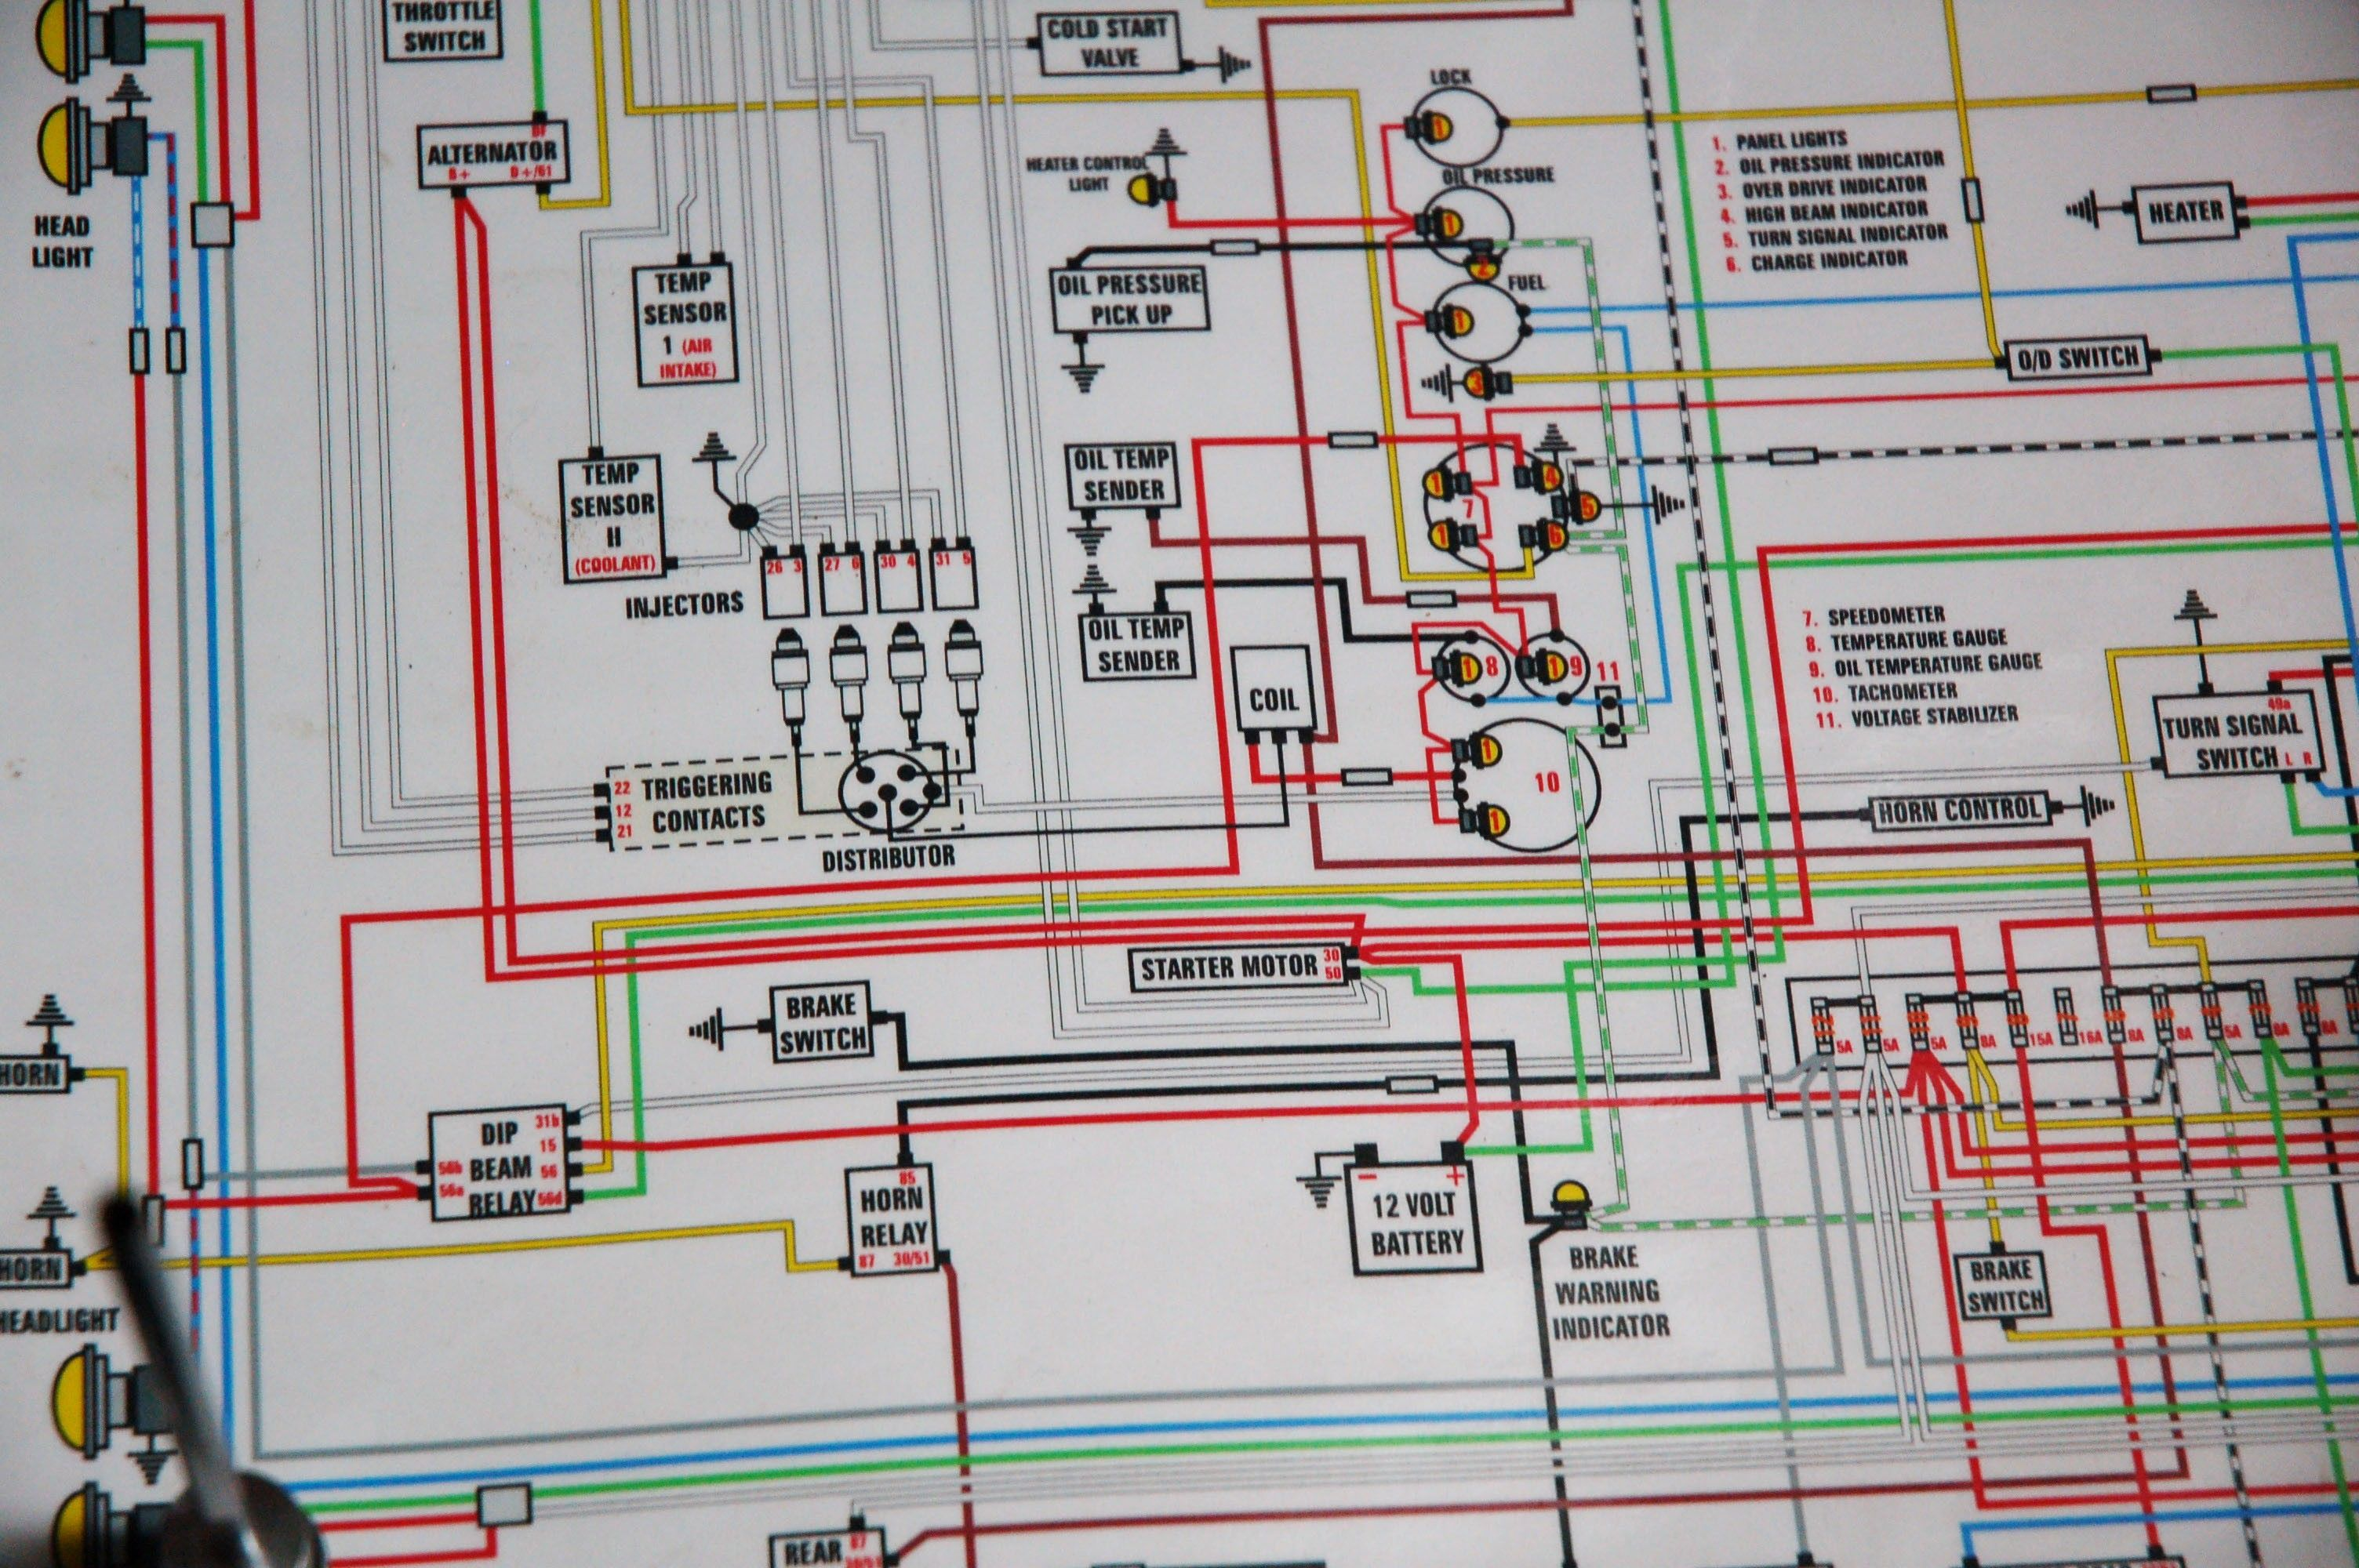 New Automotive Electrical System Tutorial #diagram ... on automotive refrigeration system, automotive vacuum system, automotive front suspension, automotive suspension system, automotive insulation, automotive lighting system, automotive drivetrain, wiring system, automotive engine system, automotive paint system, automotive hvac system, automotive ventilation system, automotive heating system, automotive springs, cobra car alarm system, automotive maintenance system, automotive fuel system, automotive roof system, truck system, automotive powertrain system,